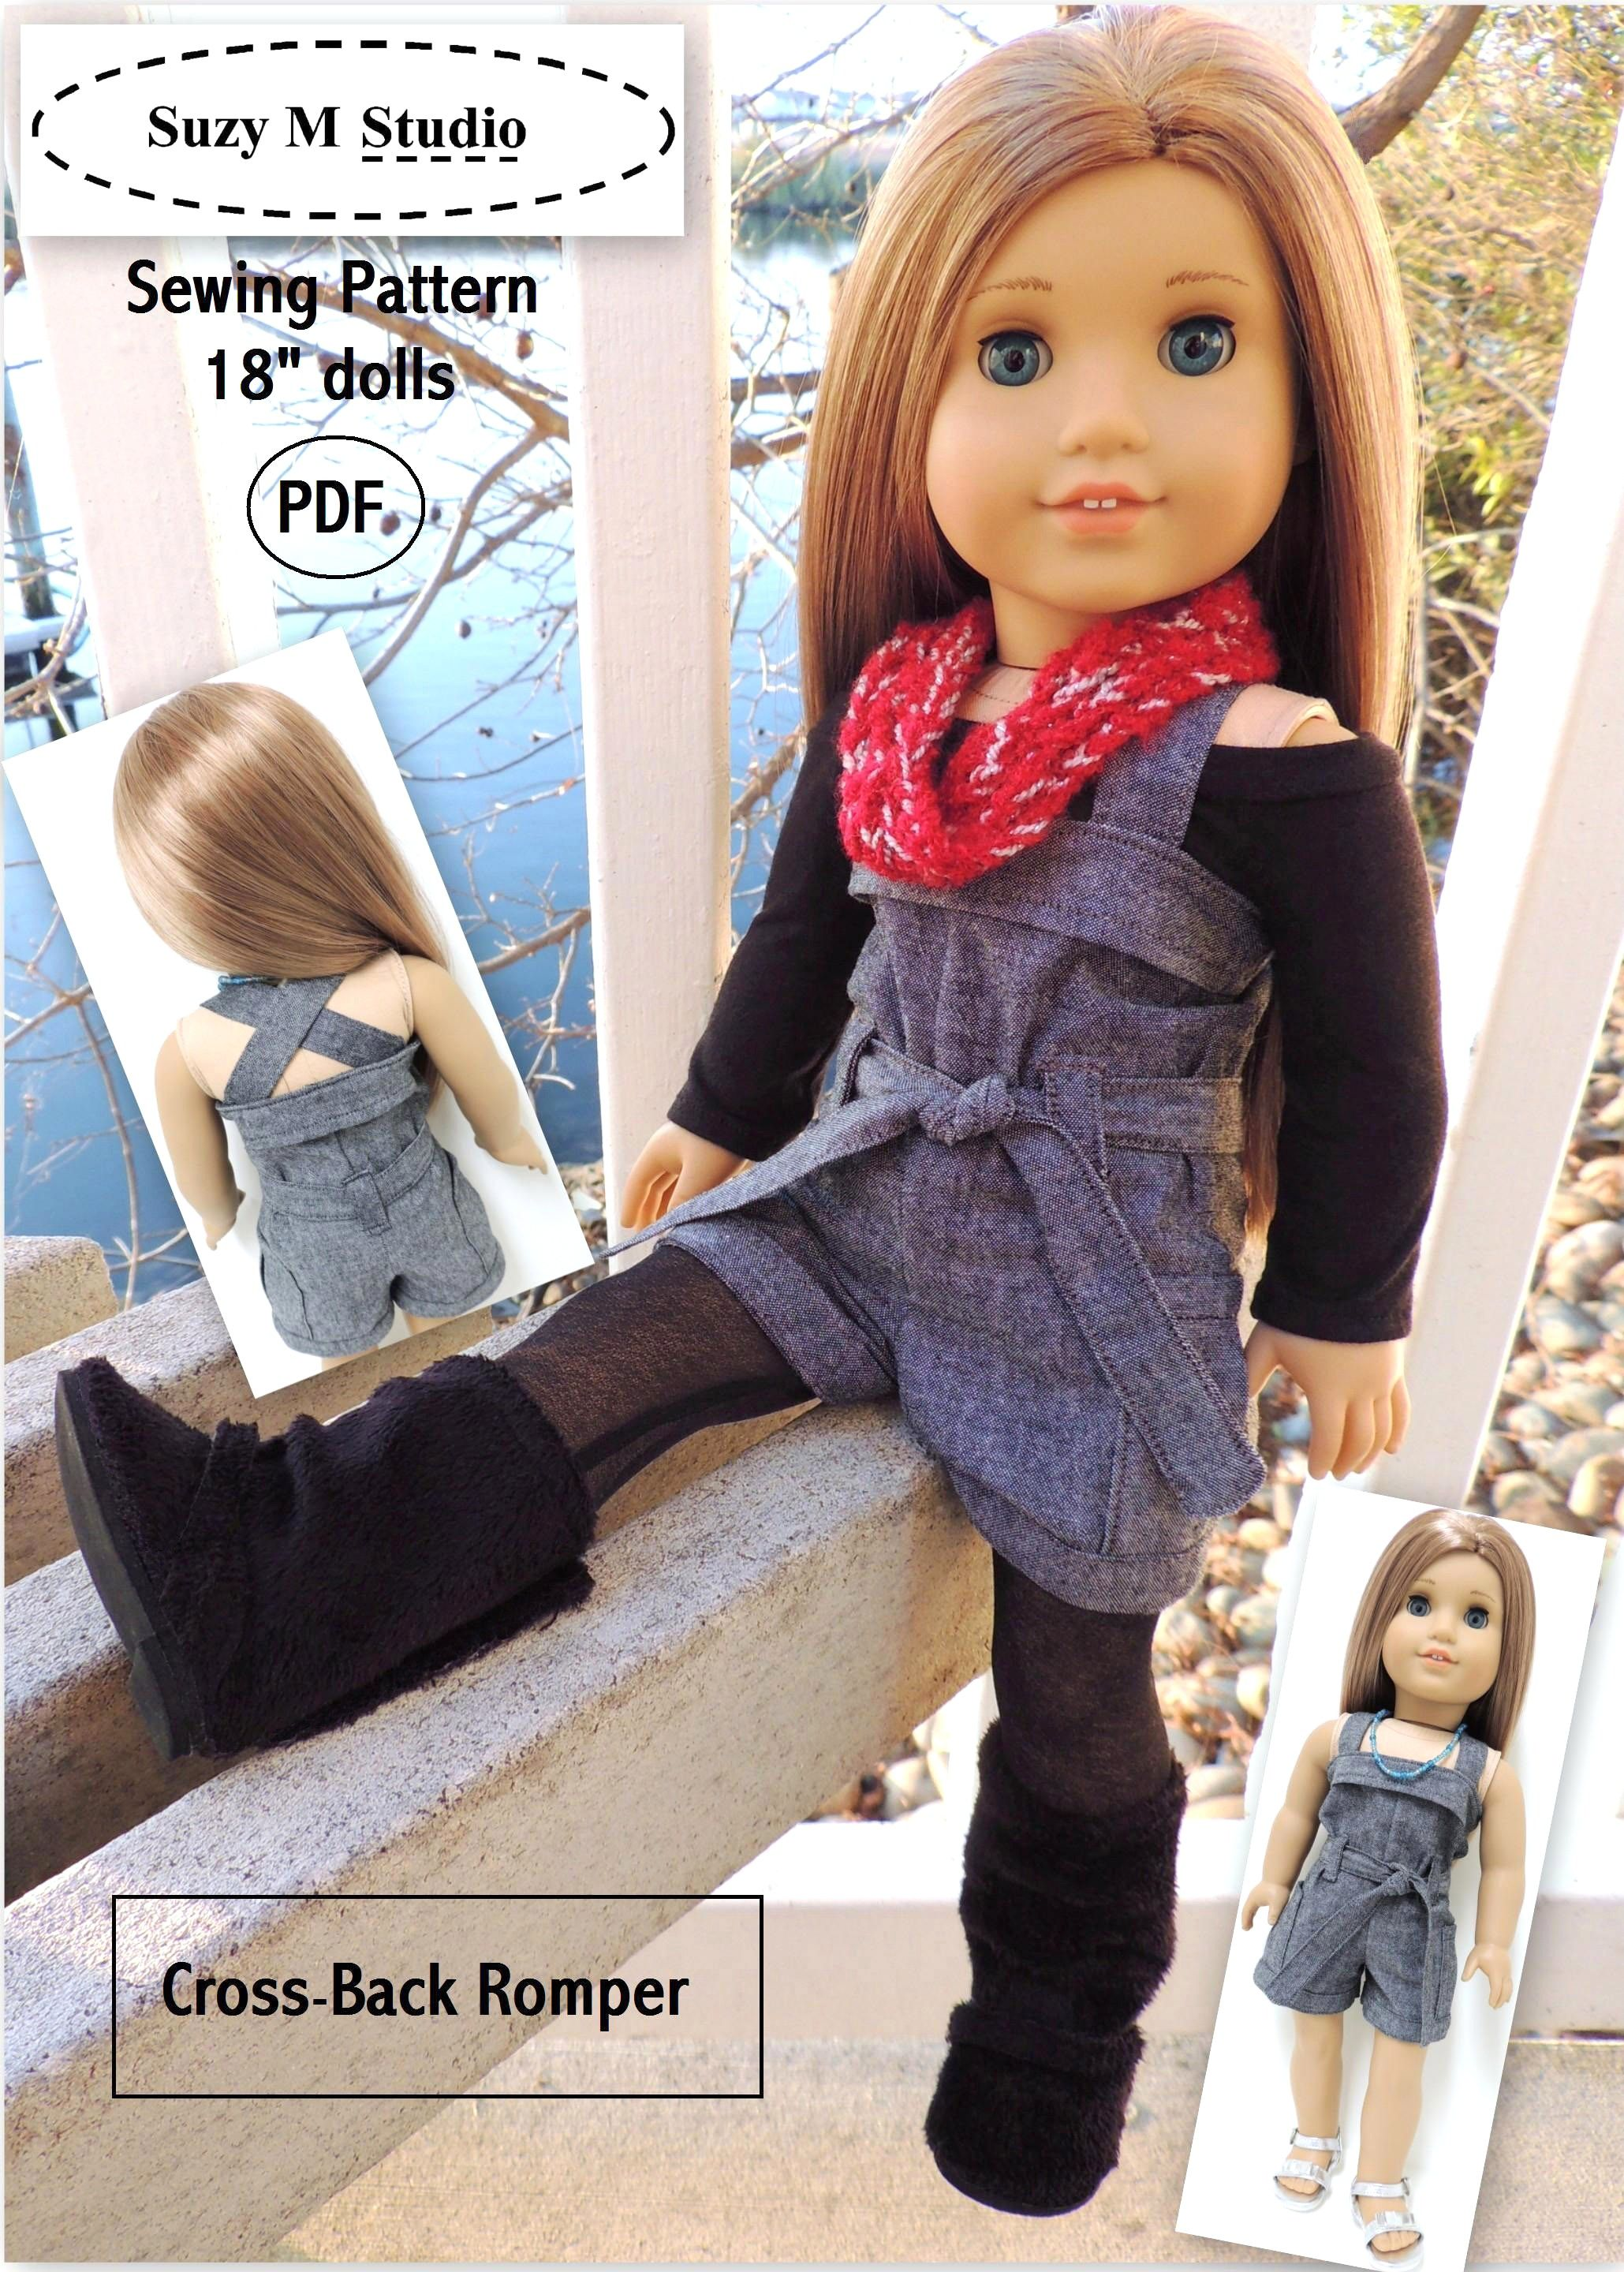 Cross back romper suzymstudio this site has other cute clothes american girl doll romper sewing pattern so cute jeuxipadfo Images